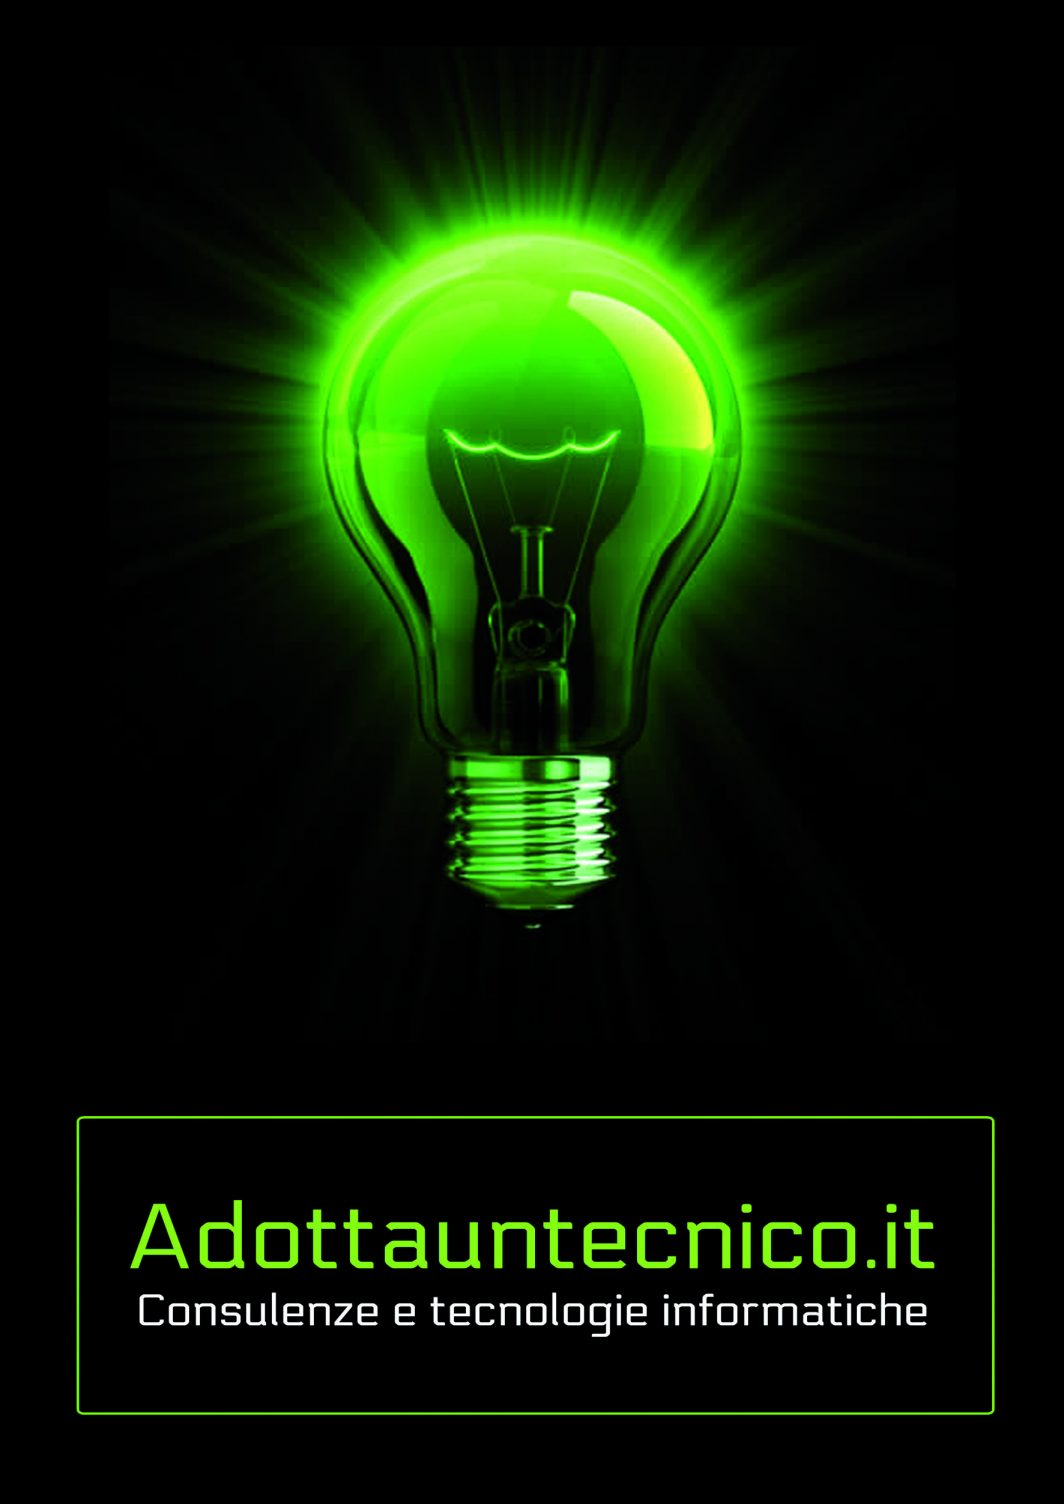 adottauntecnico assistenza IT